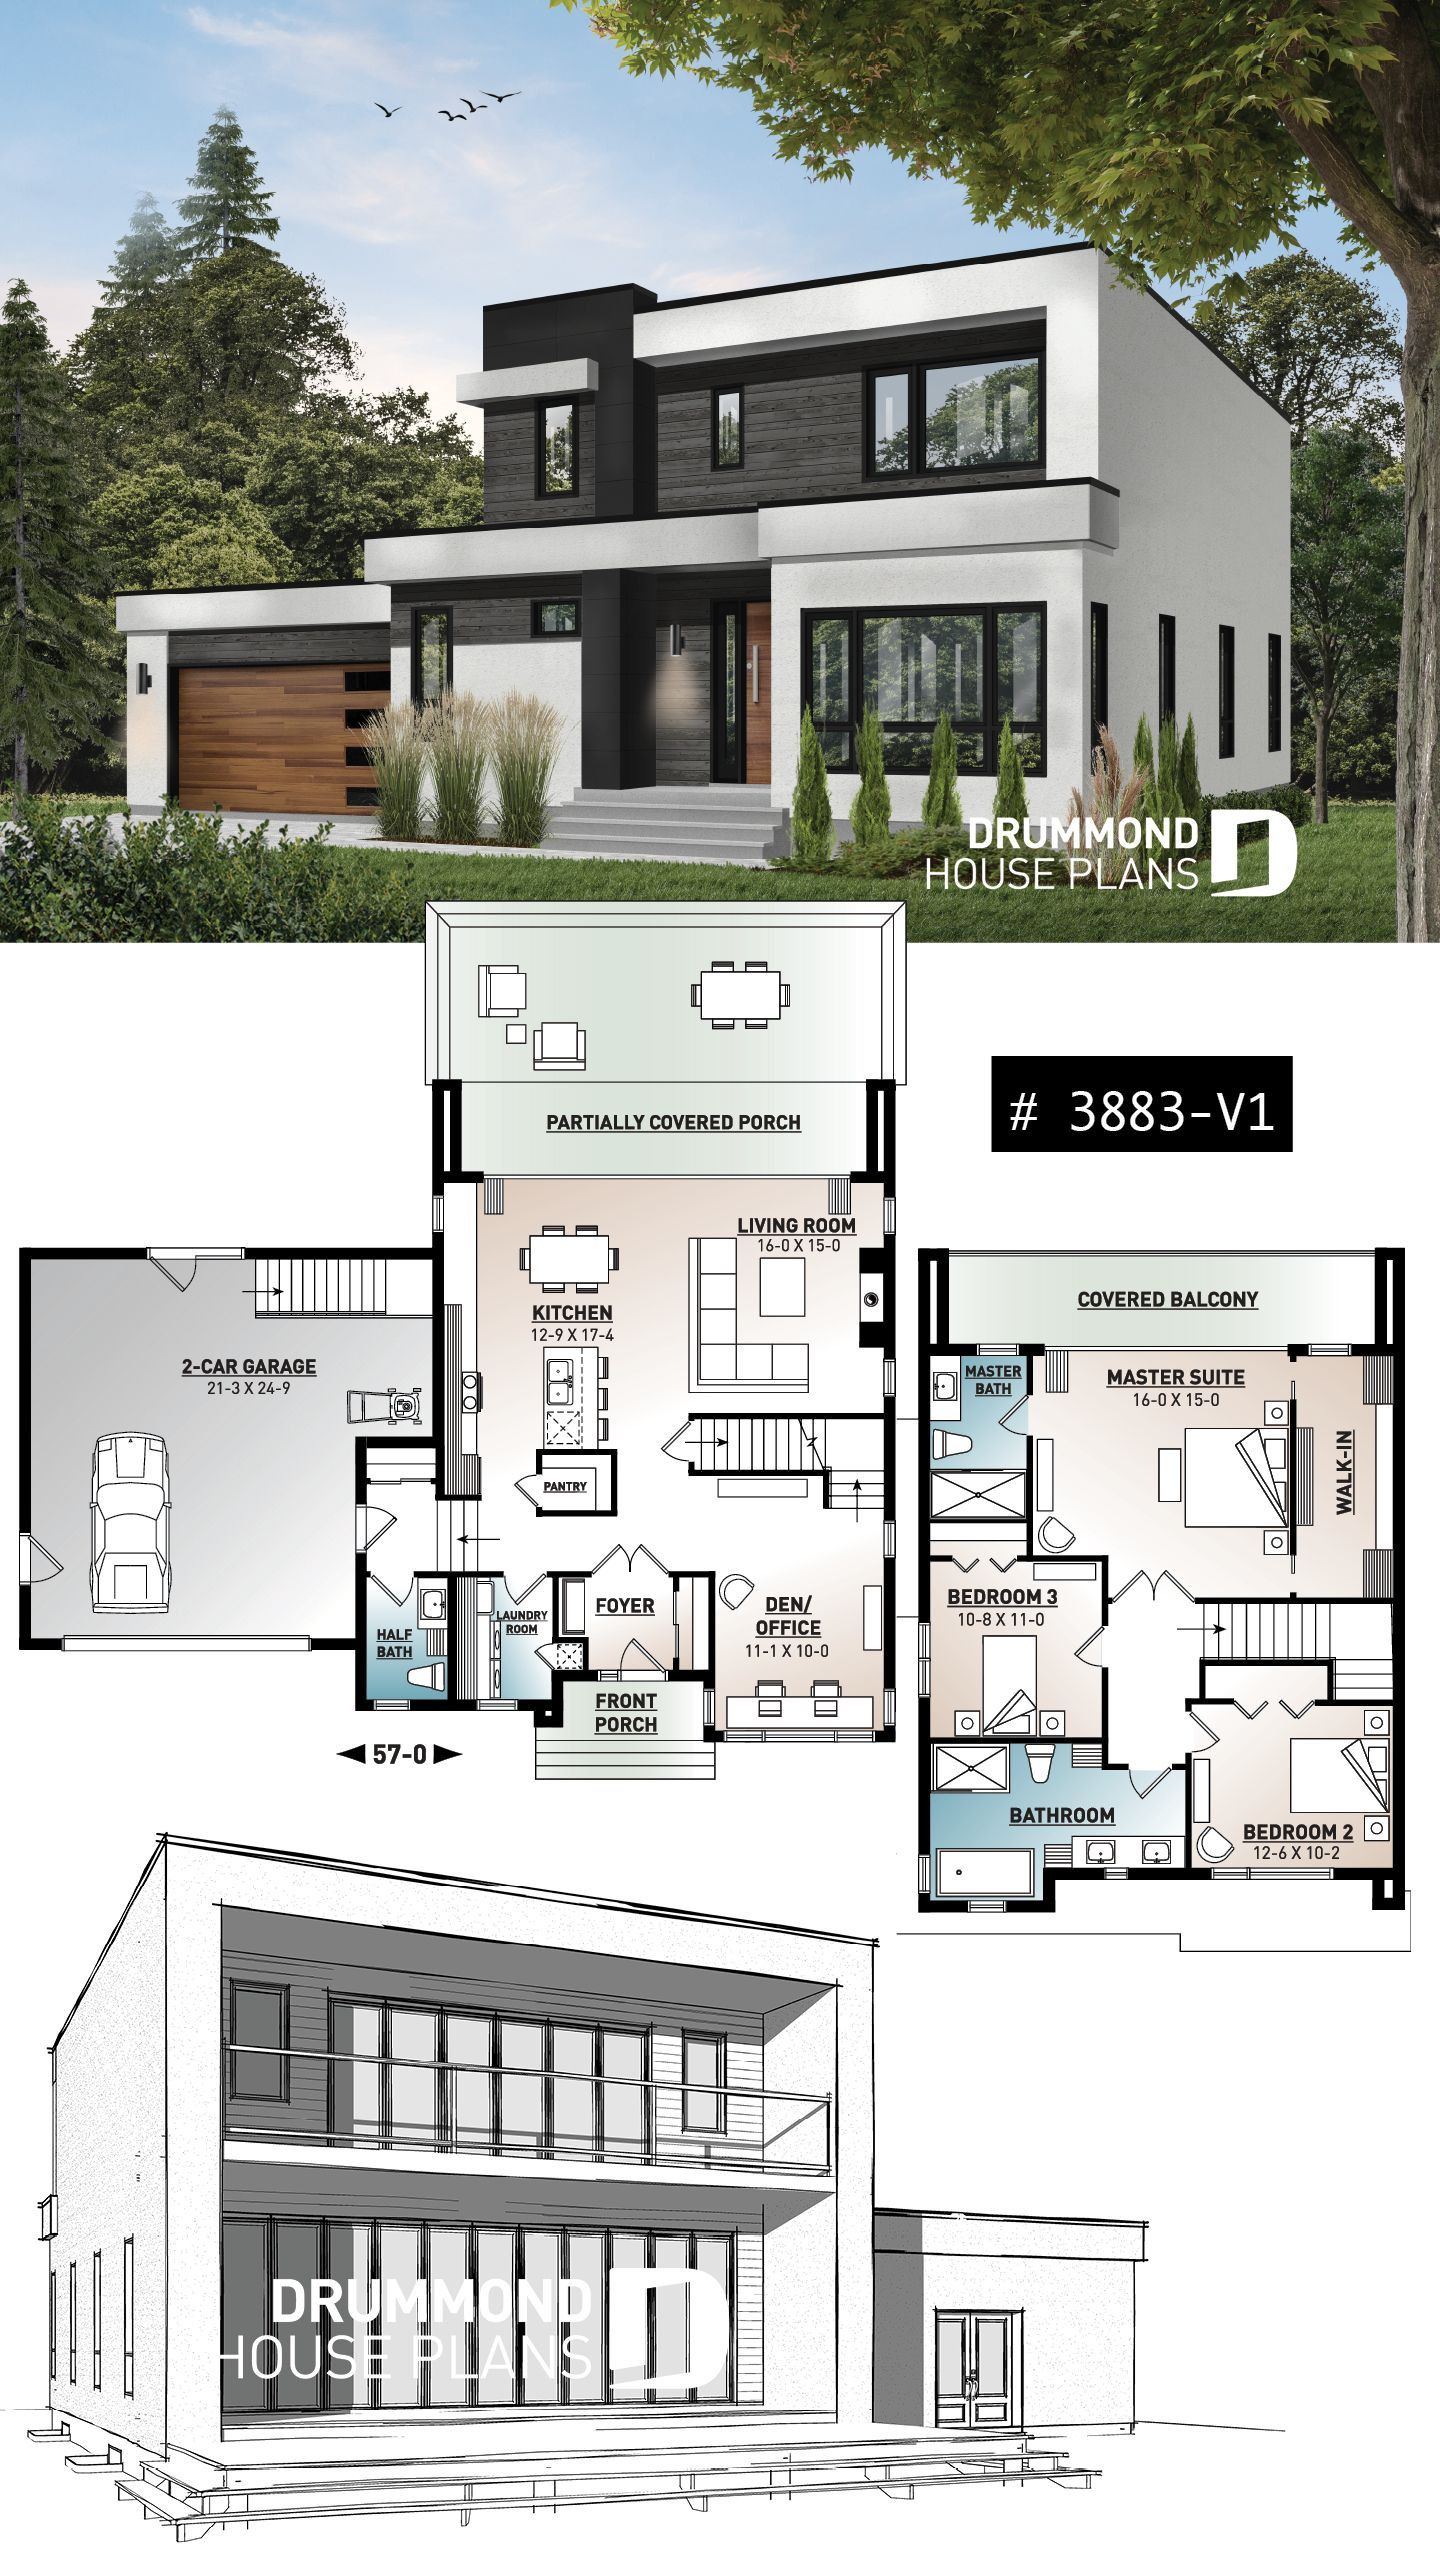 Architectural Design Home Plans Inspirational Modern House Plans Designs with Photos Kumpalo